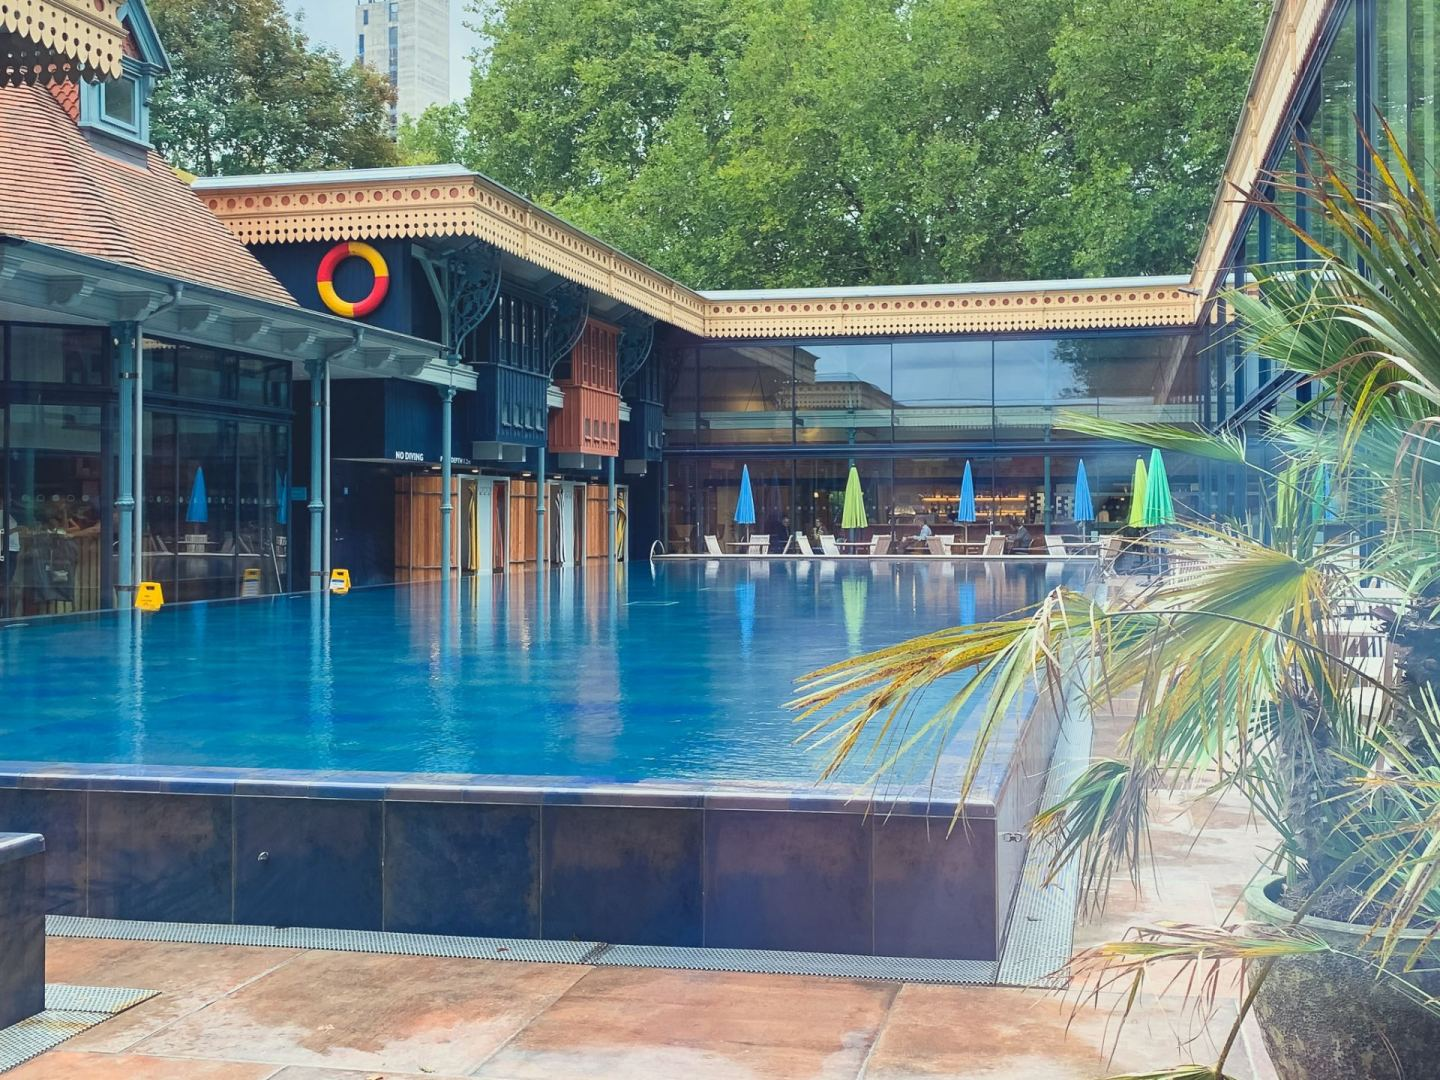 The pool at Thames Lido